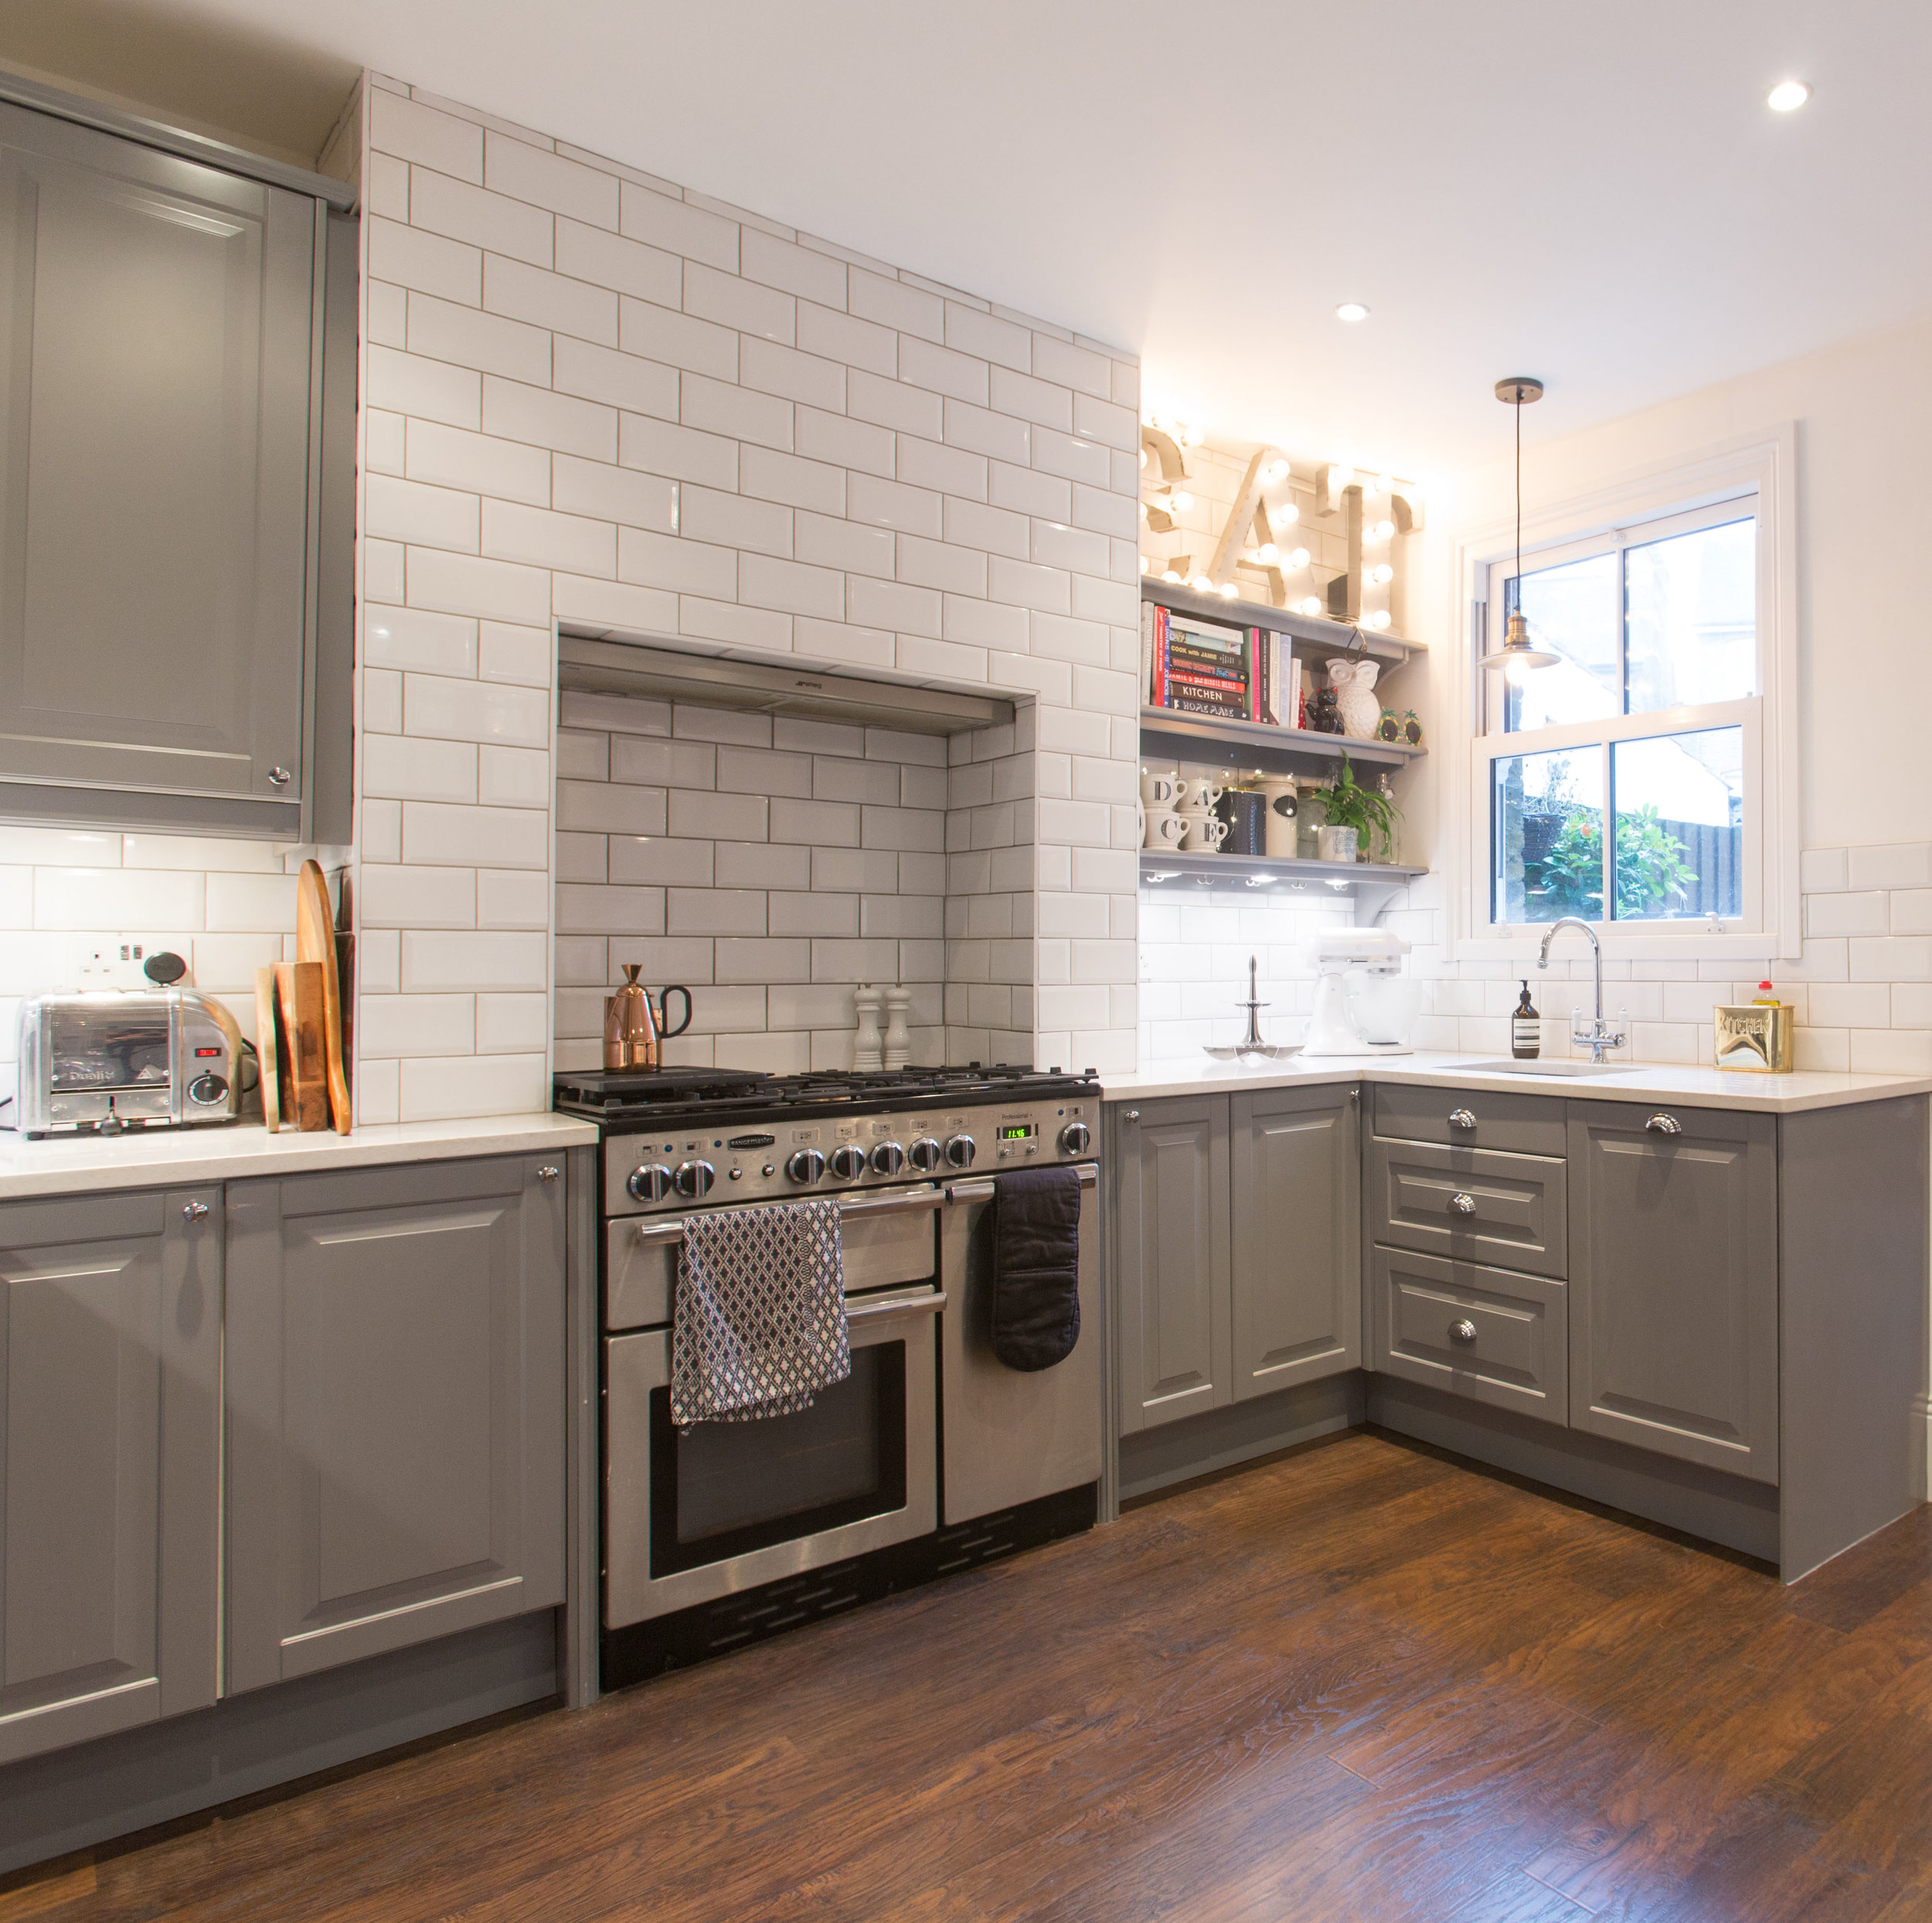 Grey industrial kitchen from ikea.